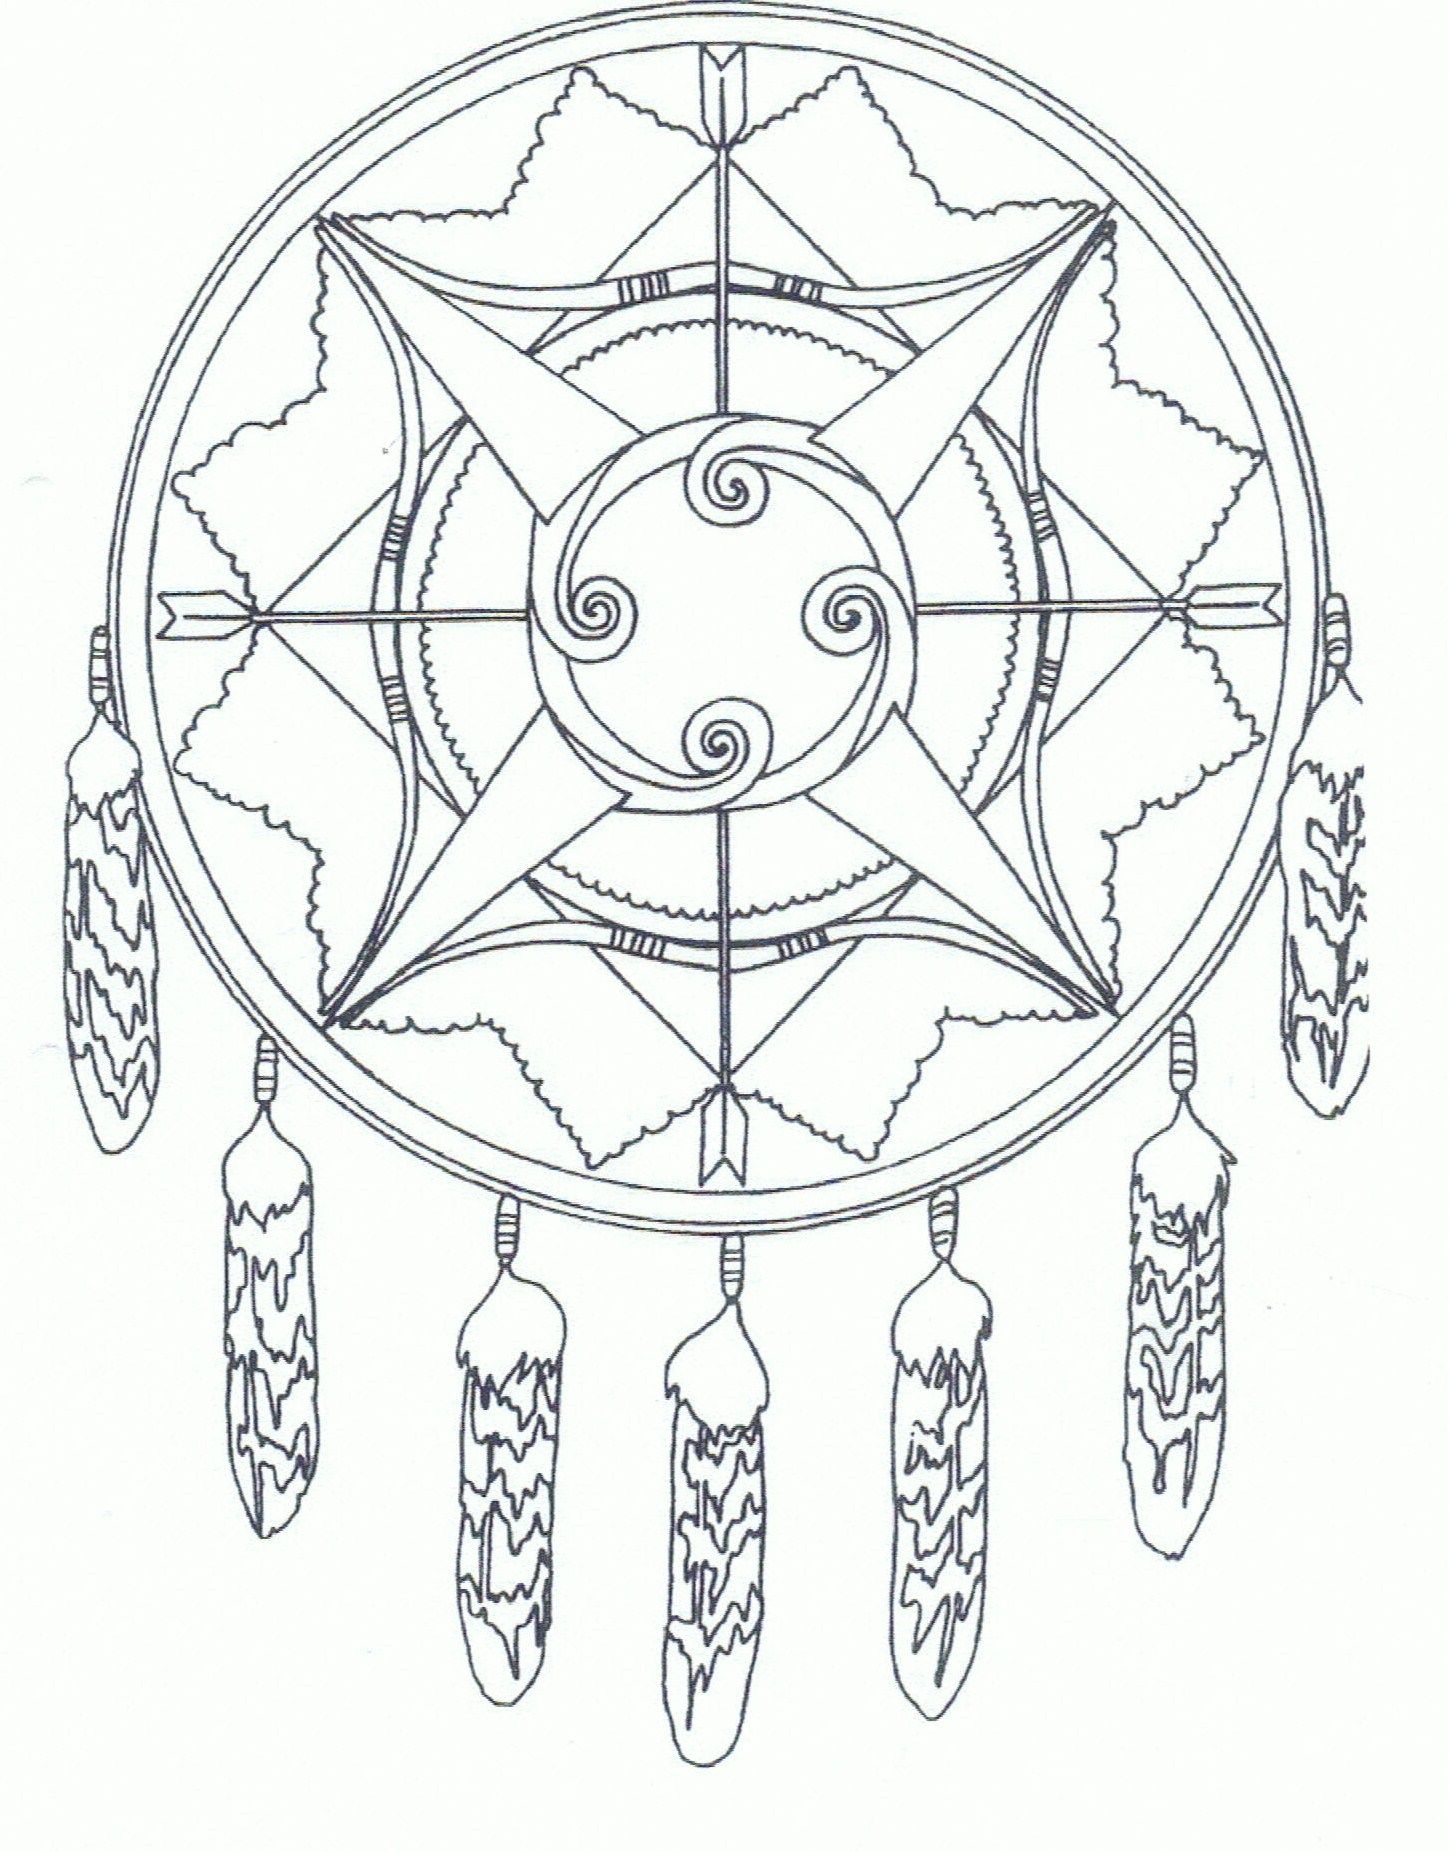 Pin by Lesa Williams Manning on Coloring Pages | Pinterest | Early ...